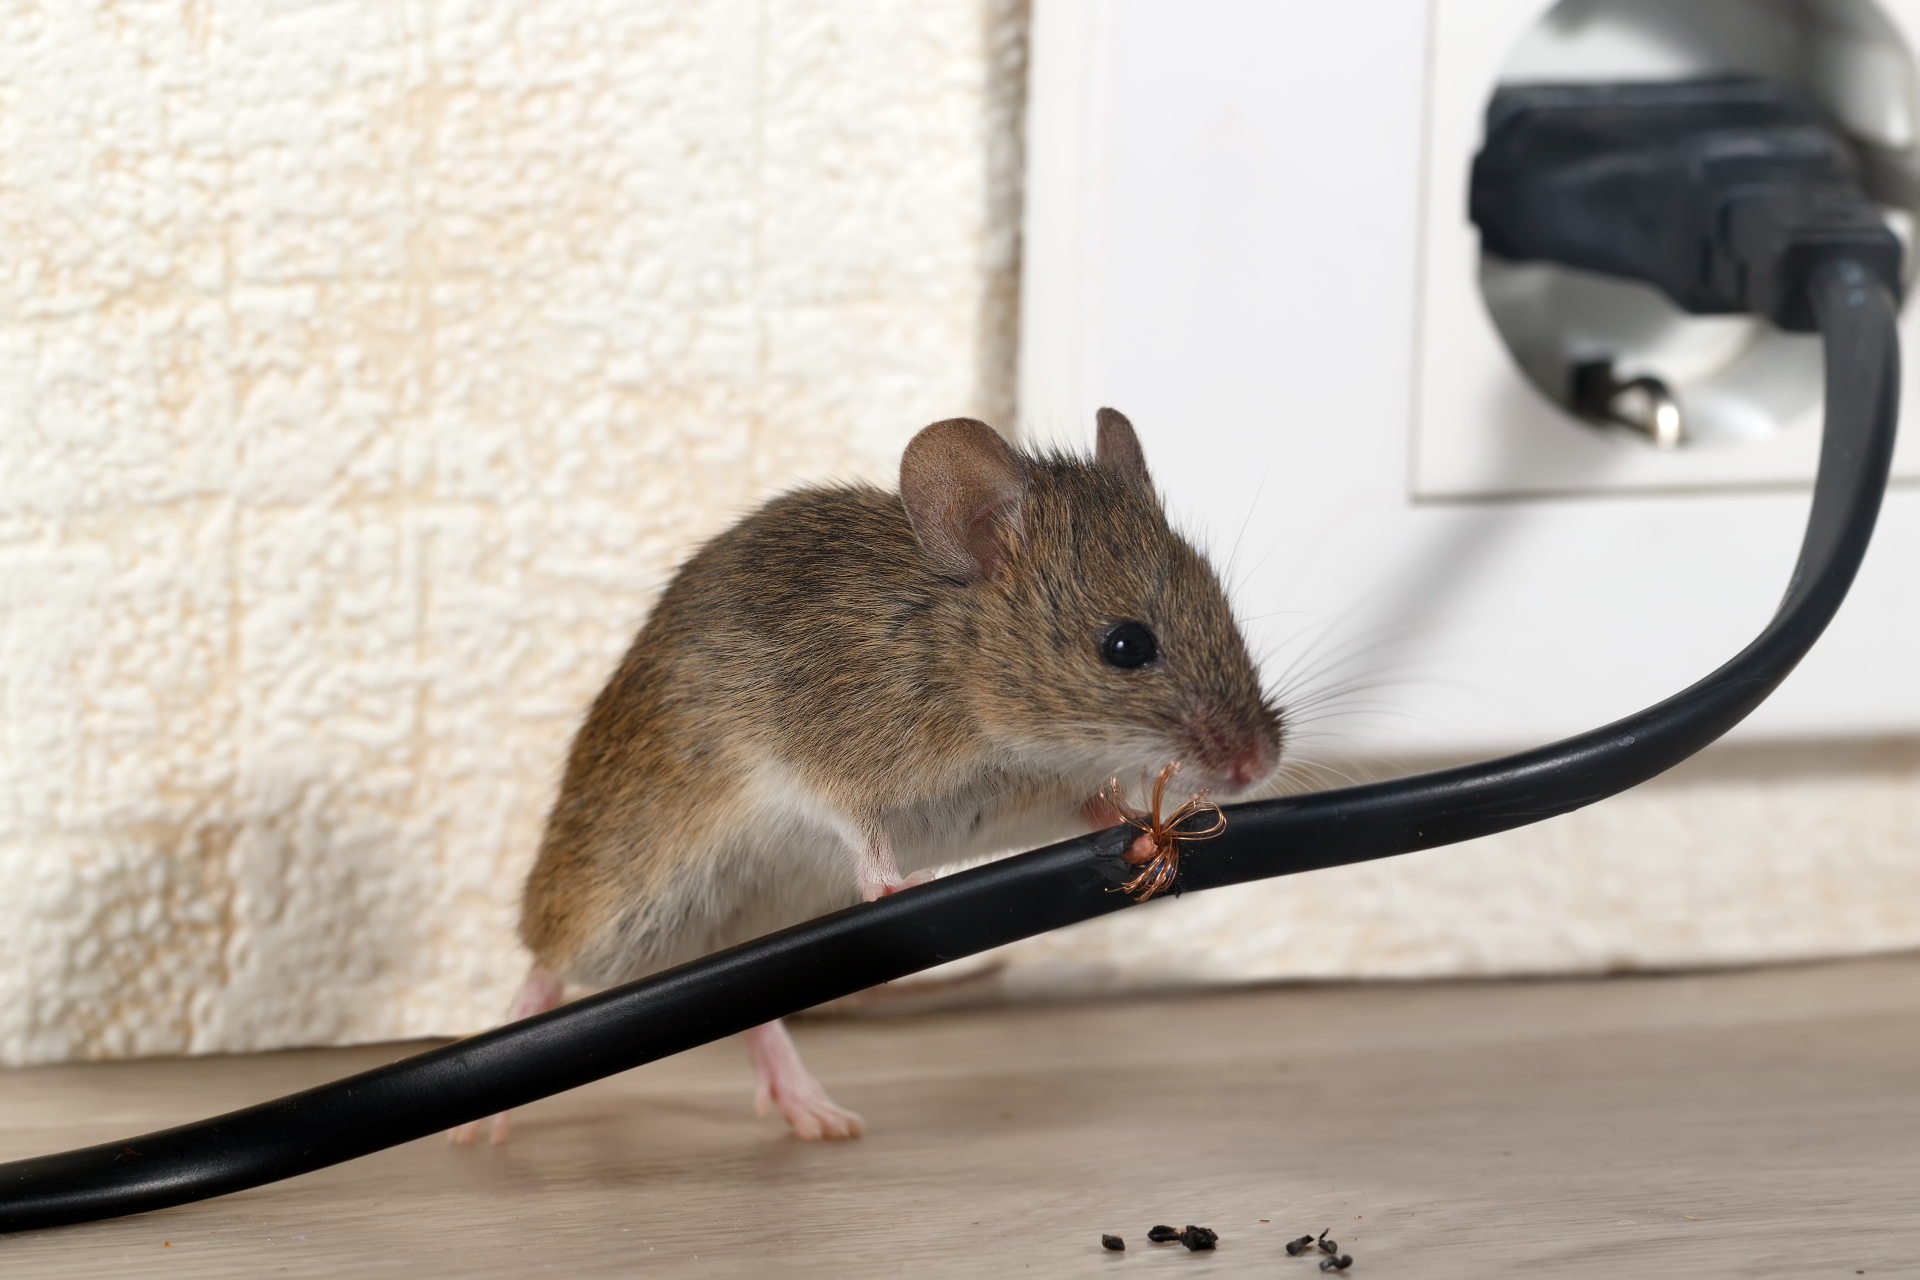 Mice Infestation, Pest Control in Brompton, SW3. Call Now 020 8166 9746